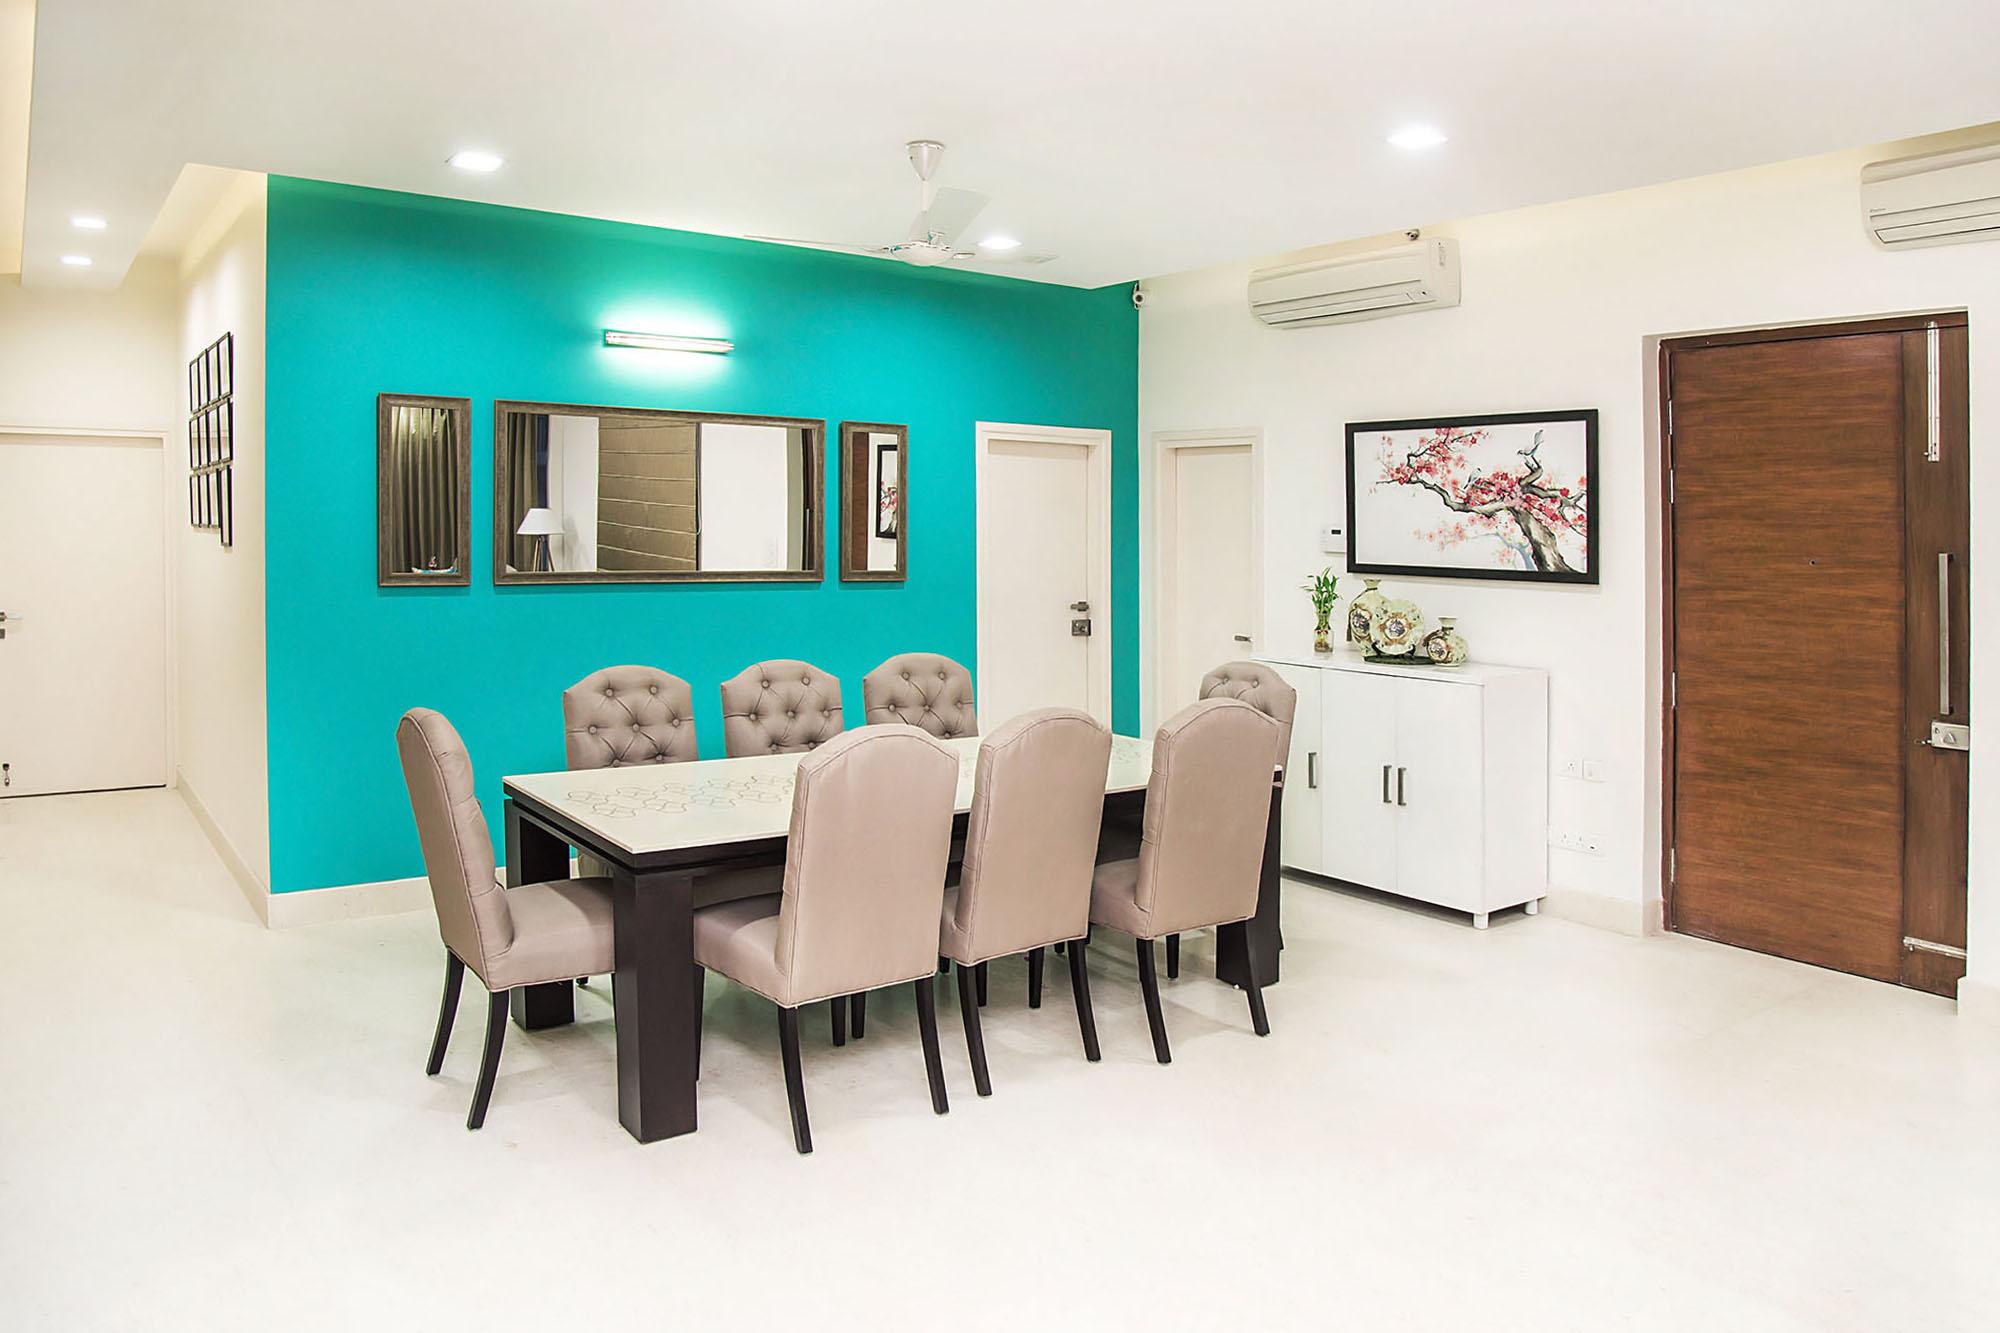 Stylish Gurgaon Interior Design For A Family Of Four